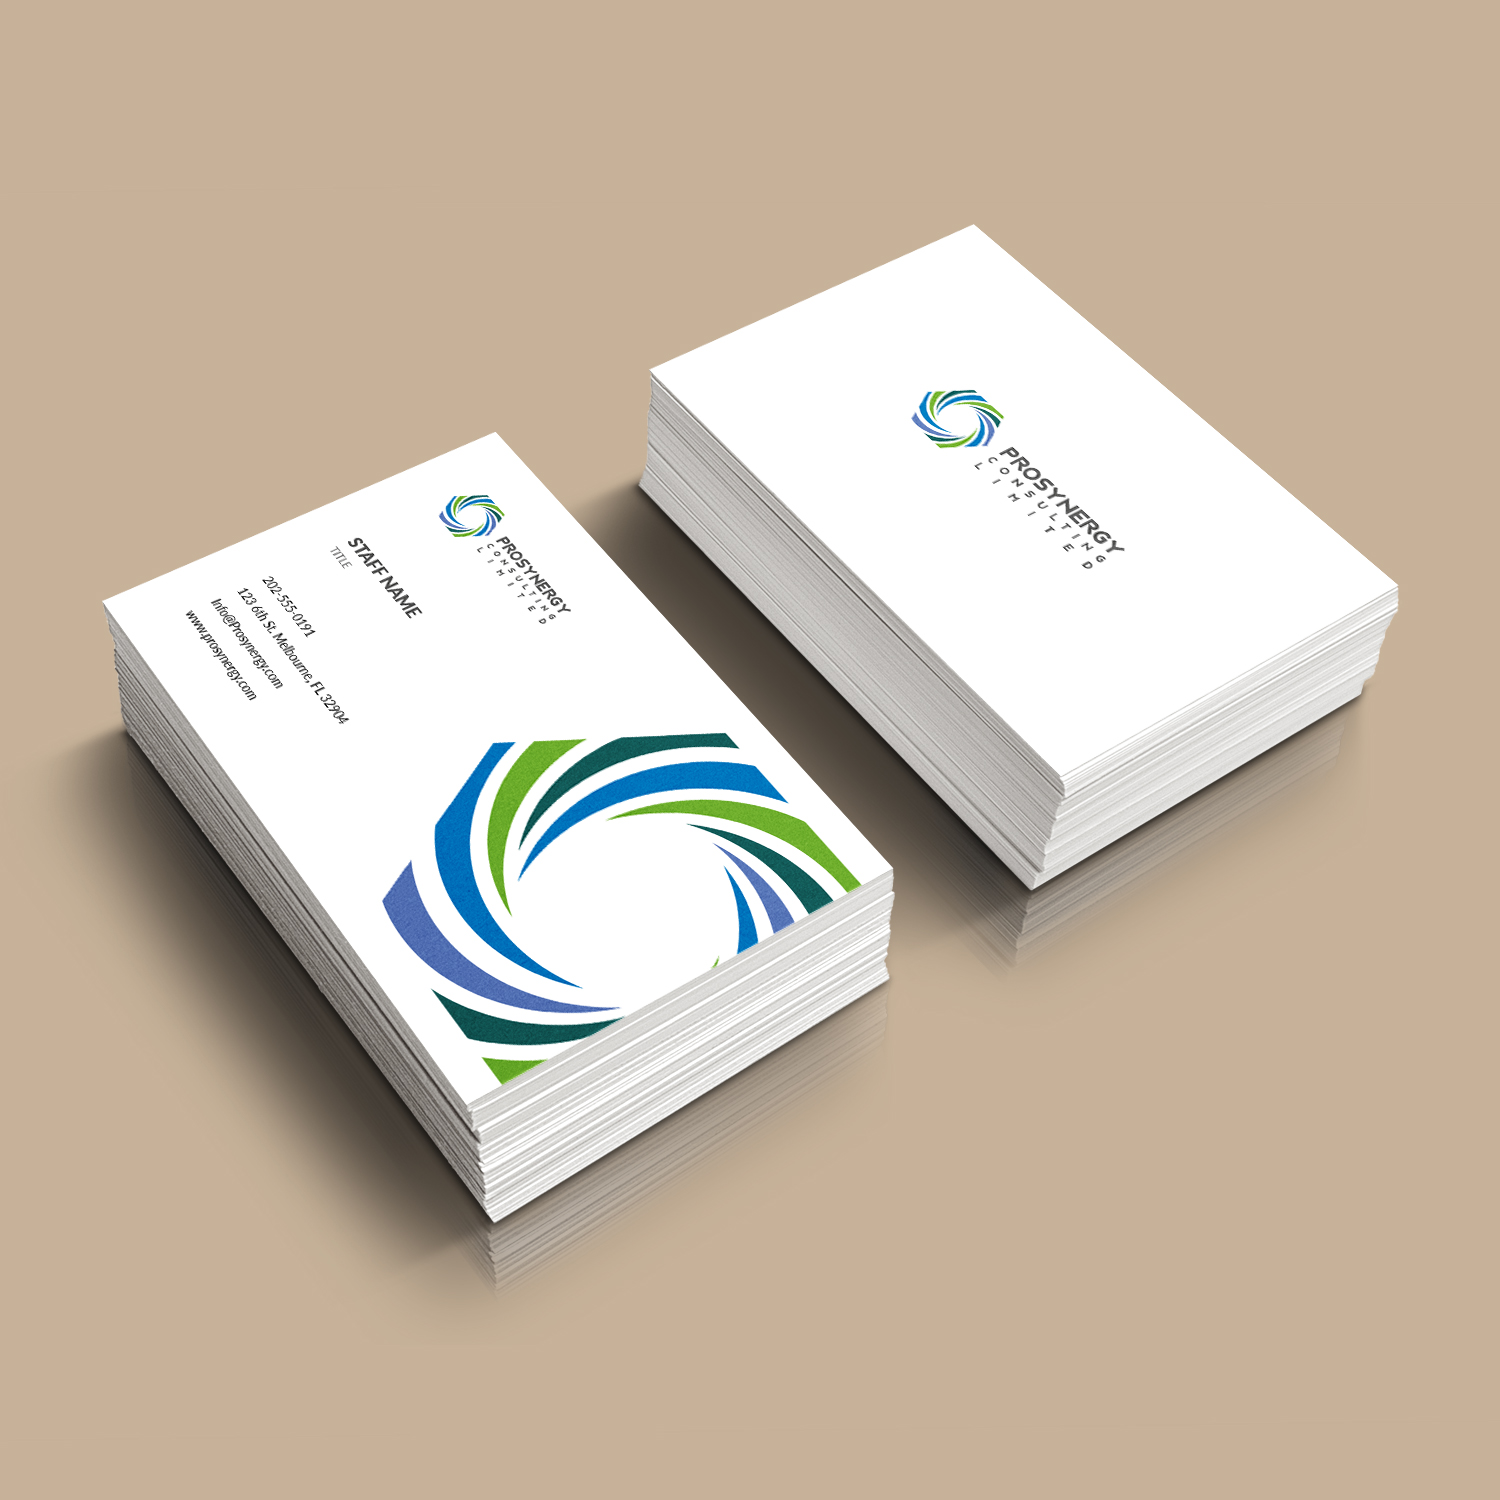 Modern professional management consulting business card design for business card design by bdesigner9 for this project design 16534504 colourmoves